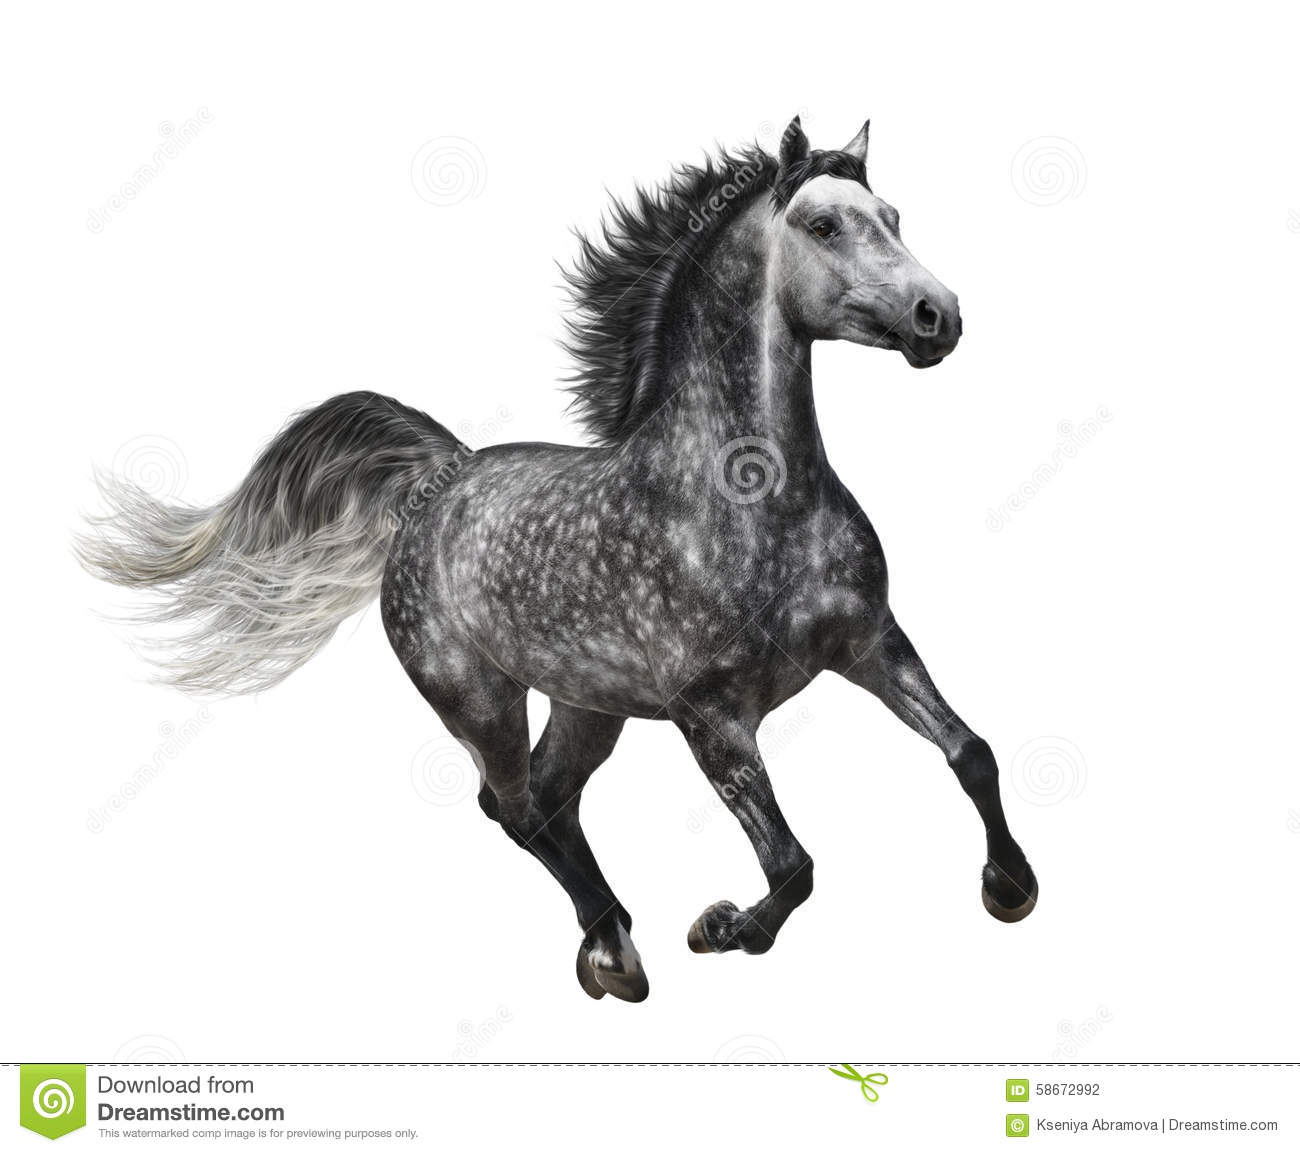 842 Dapple Grey Horse Photos Free Royalty Free Stock Photos From Dreamstime